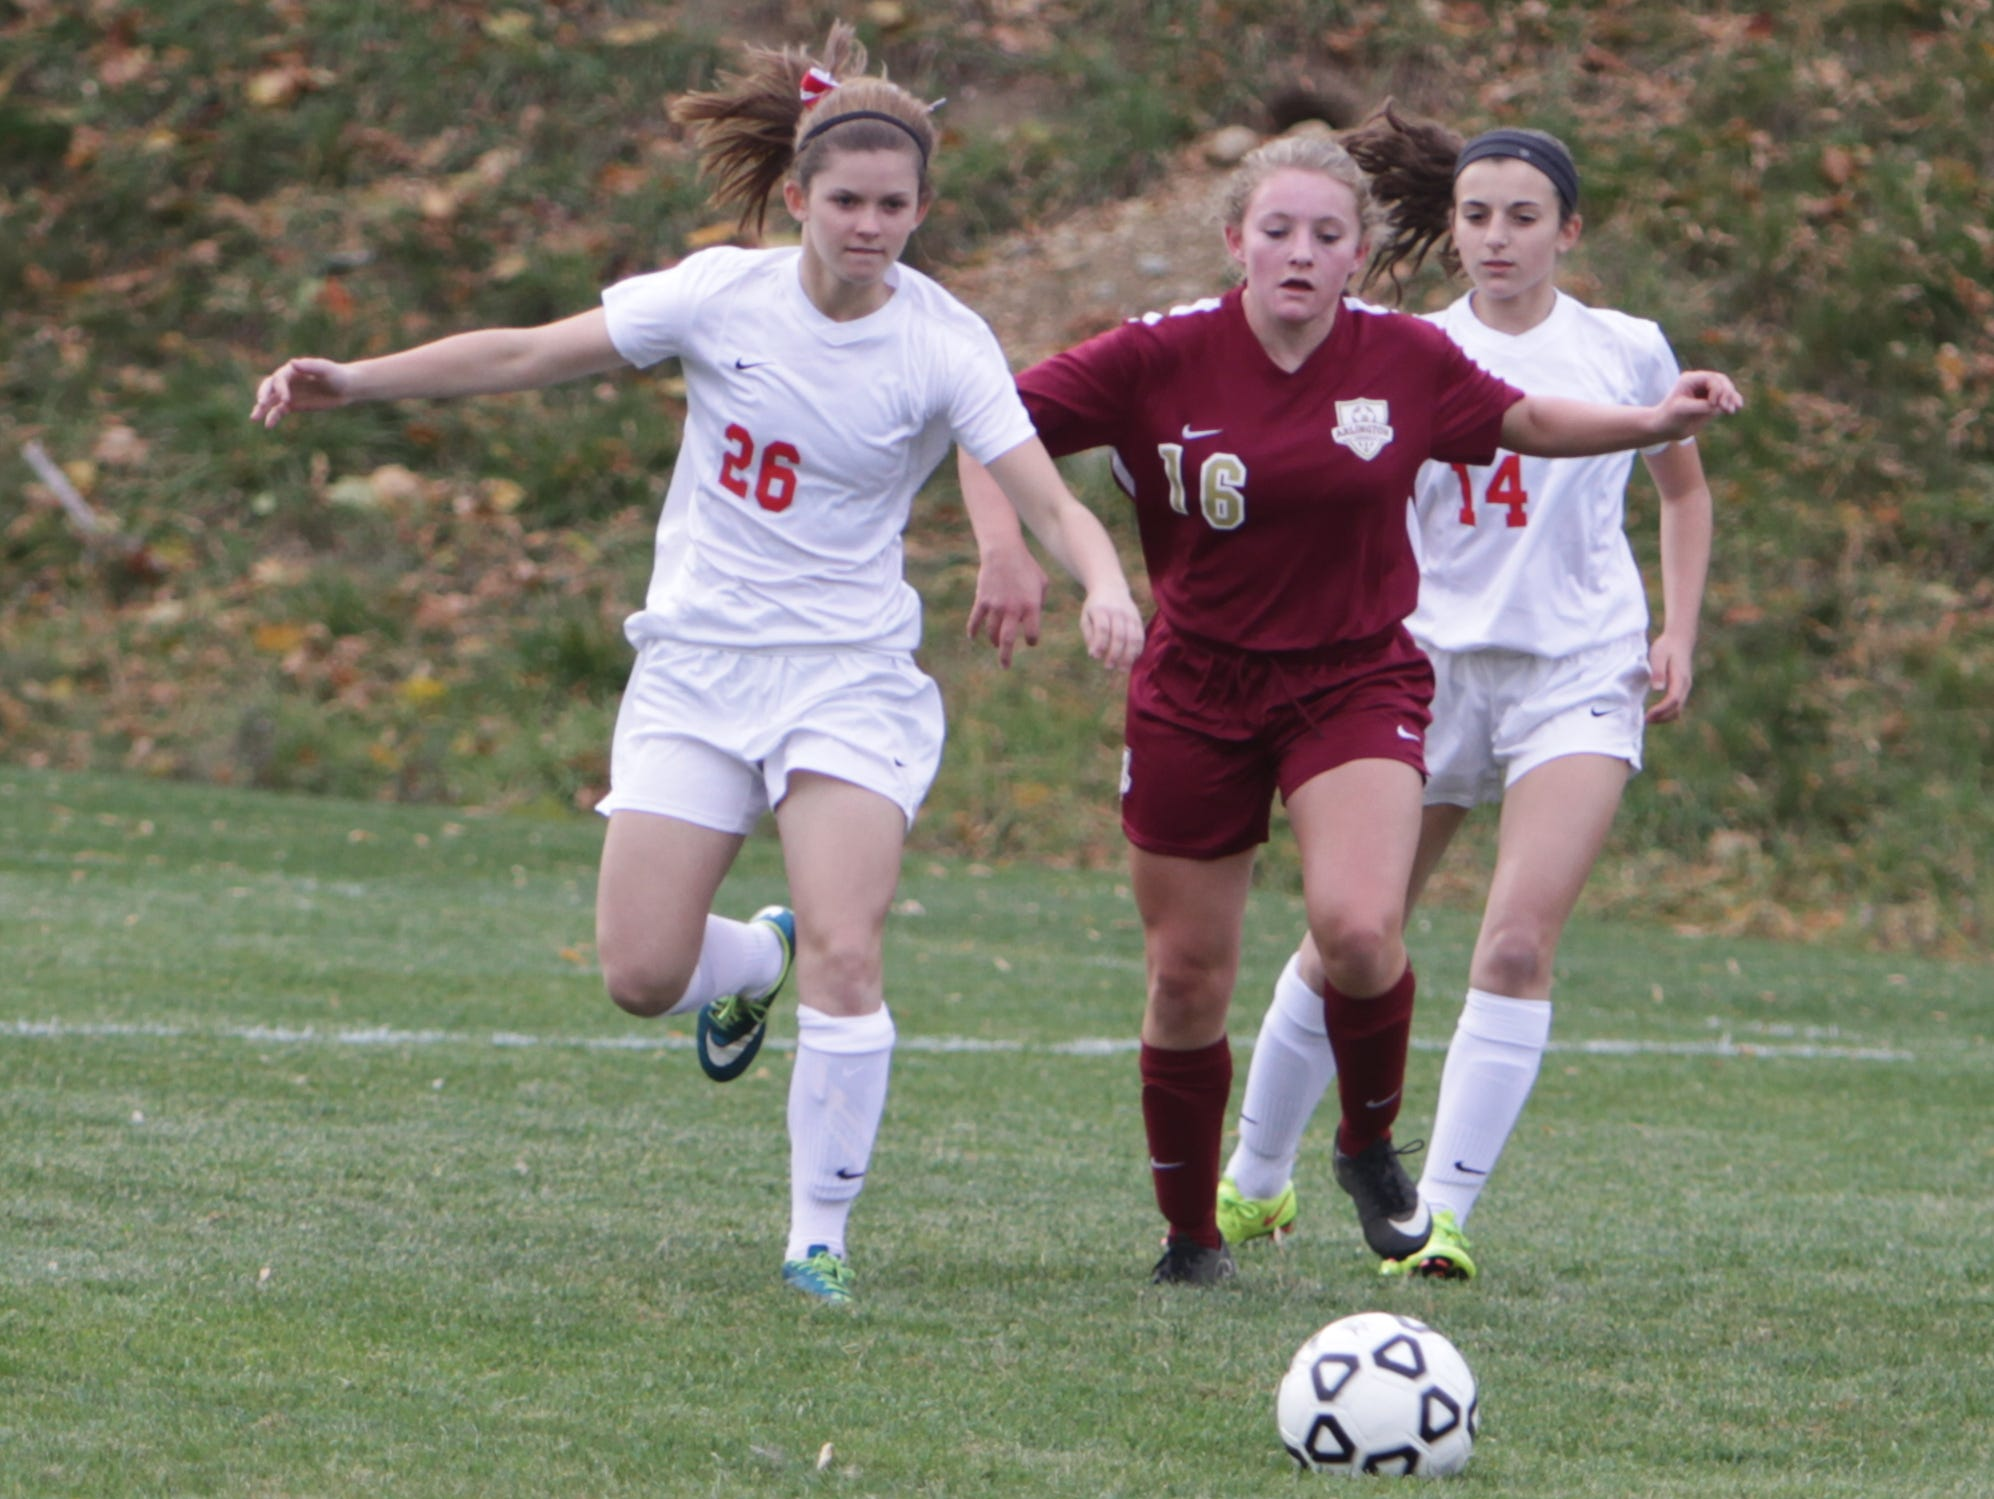 North Rockland defeated Arlington 2-0 in a Section 1, Class AA quarterfinal game at North Rockland High School on Tuesday, October 27th, 2015.